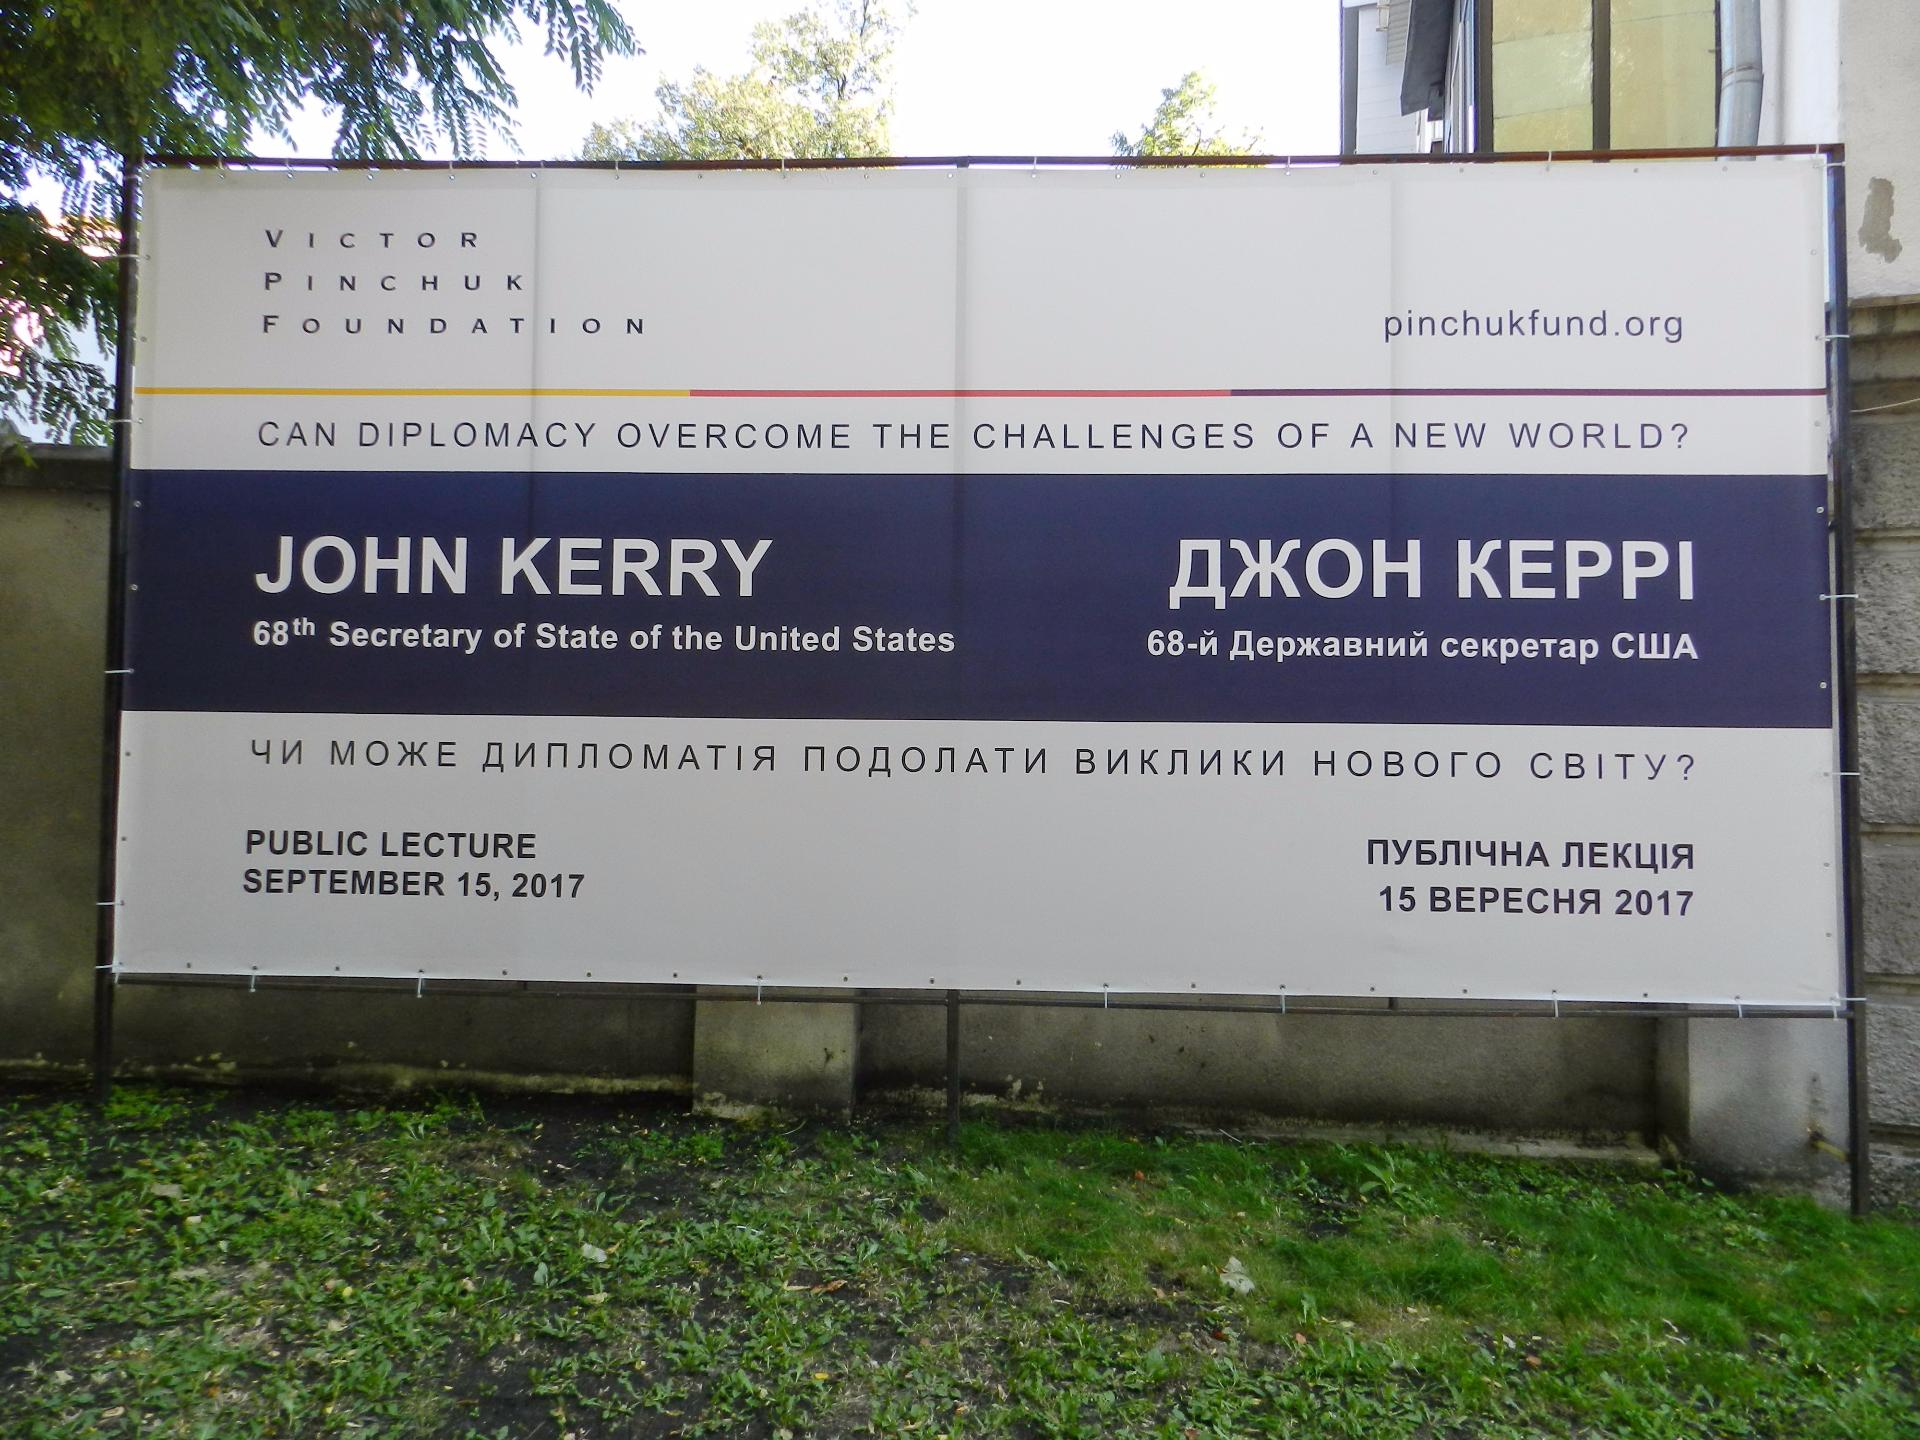 Public lecture of John Kerry in Kiev on September 15, 2017.